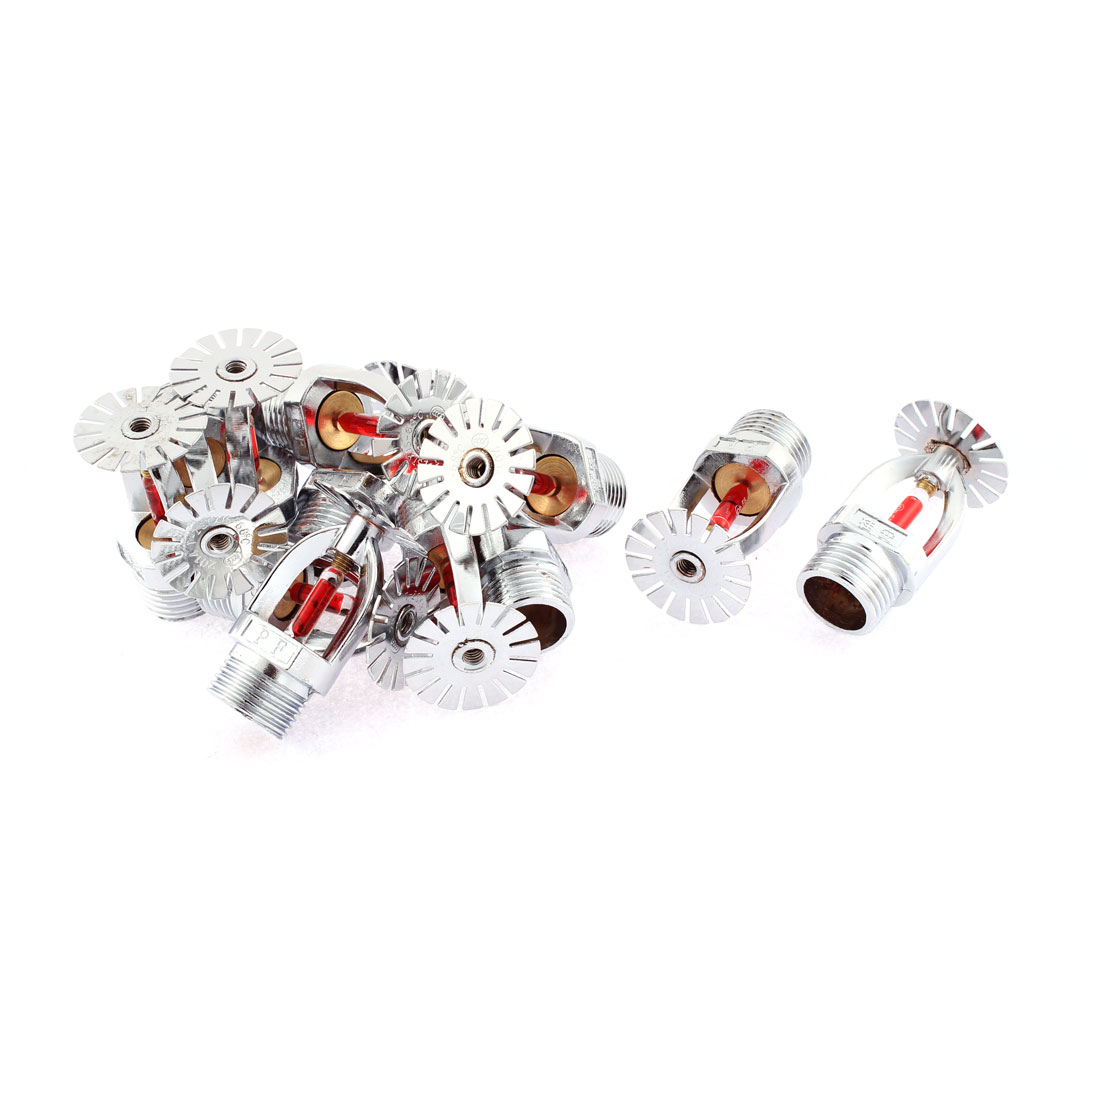 12 Pcs Red Bulb Silver Tone 21mm Male Thread Water Spraying Fire Sprinkler Head